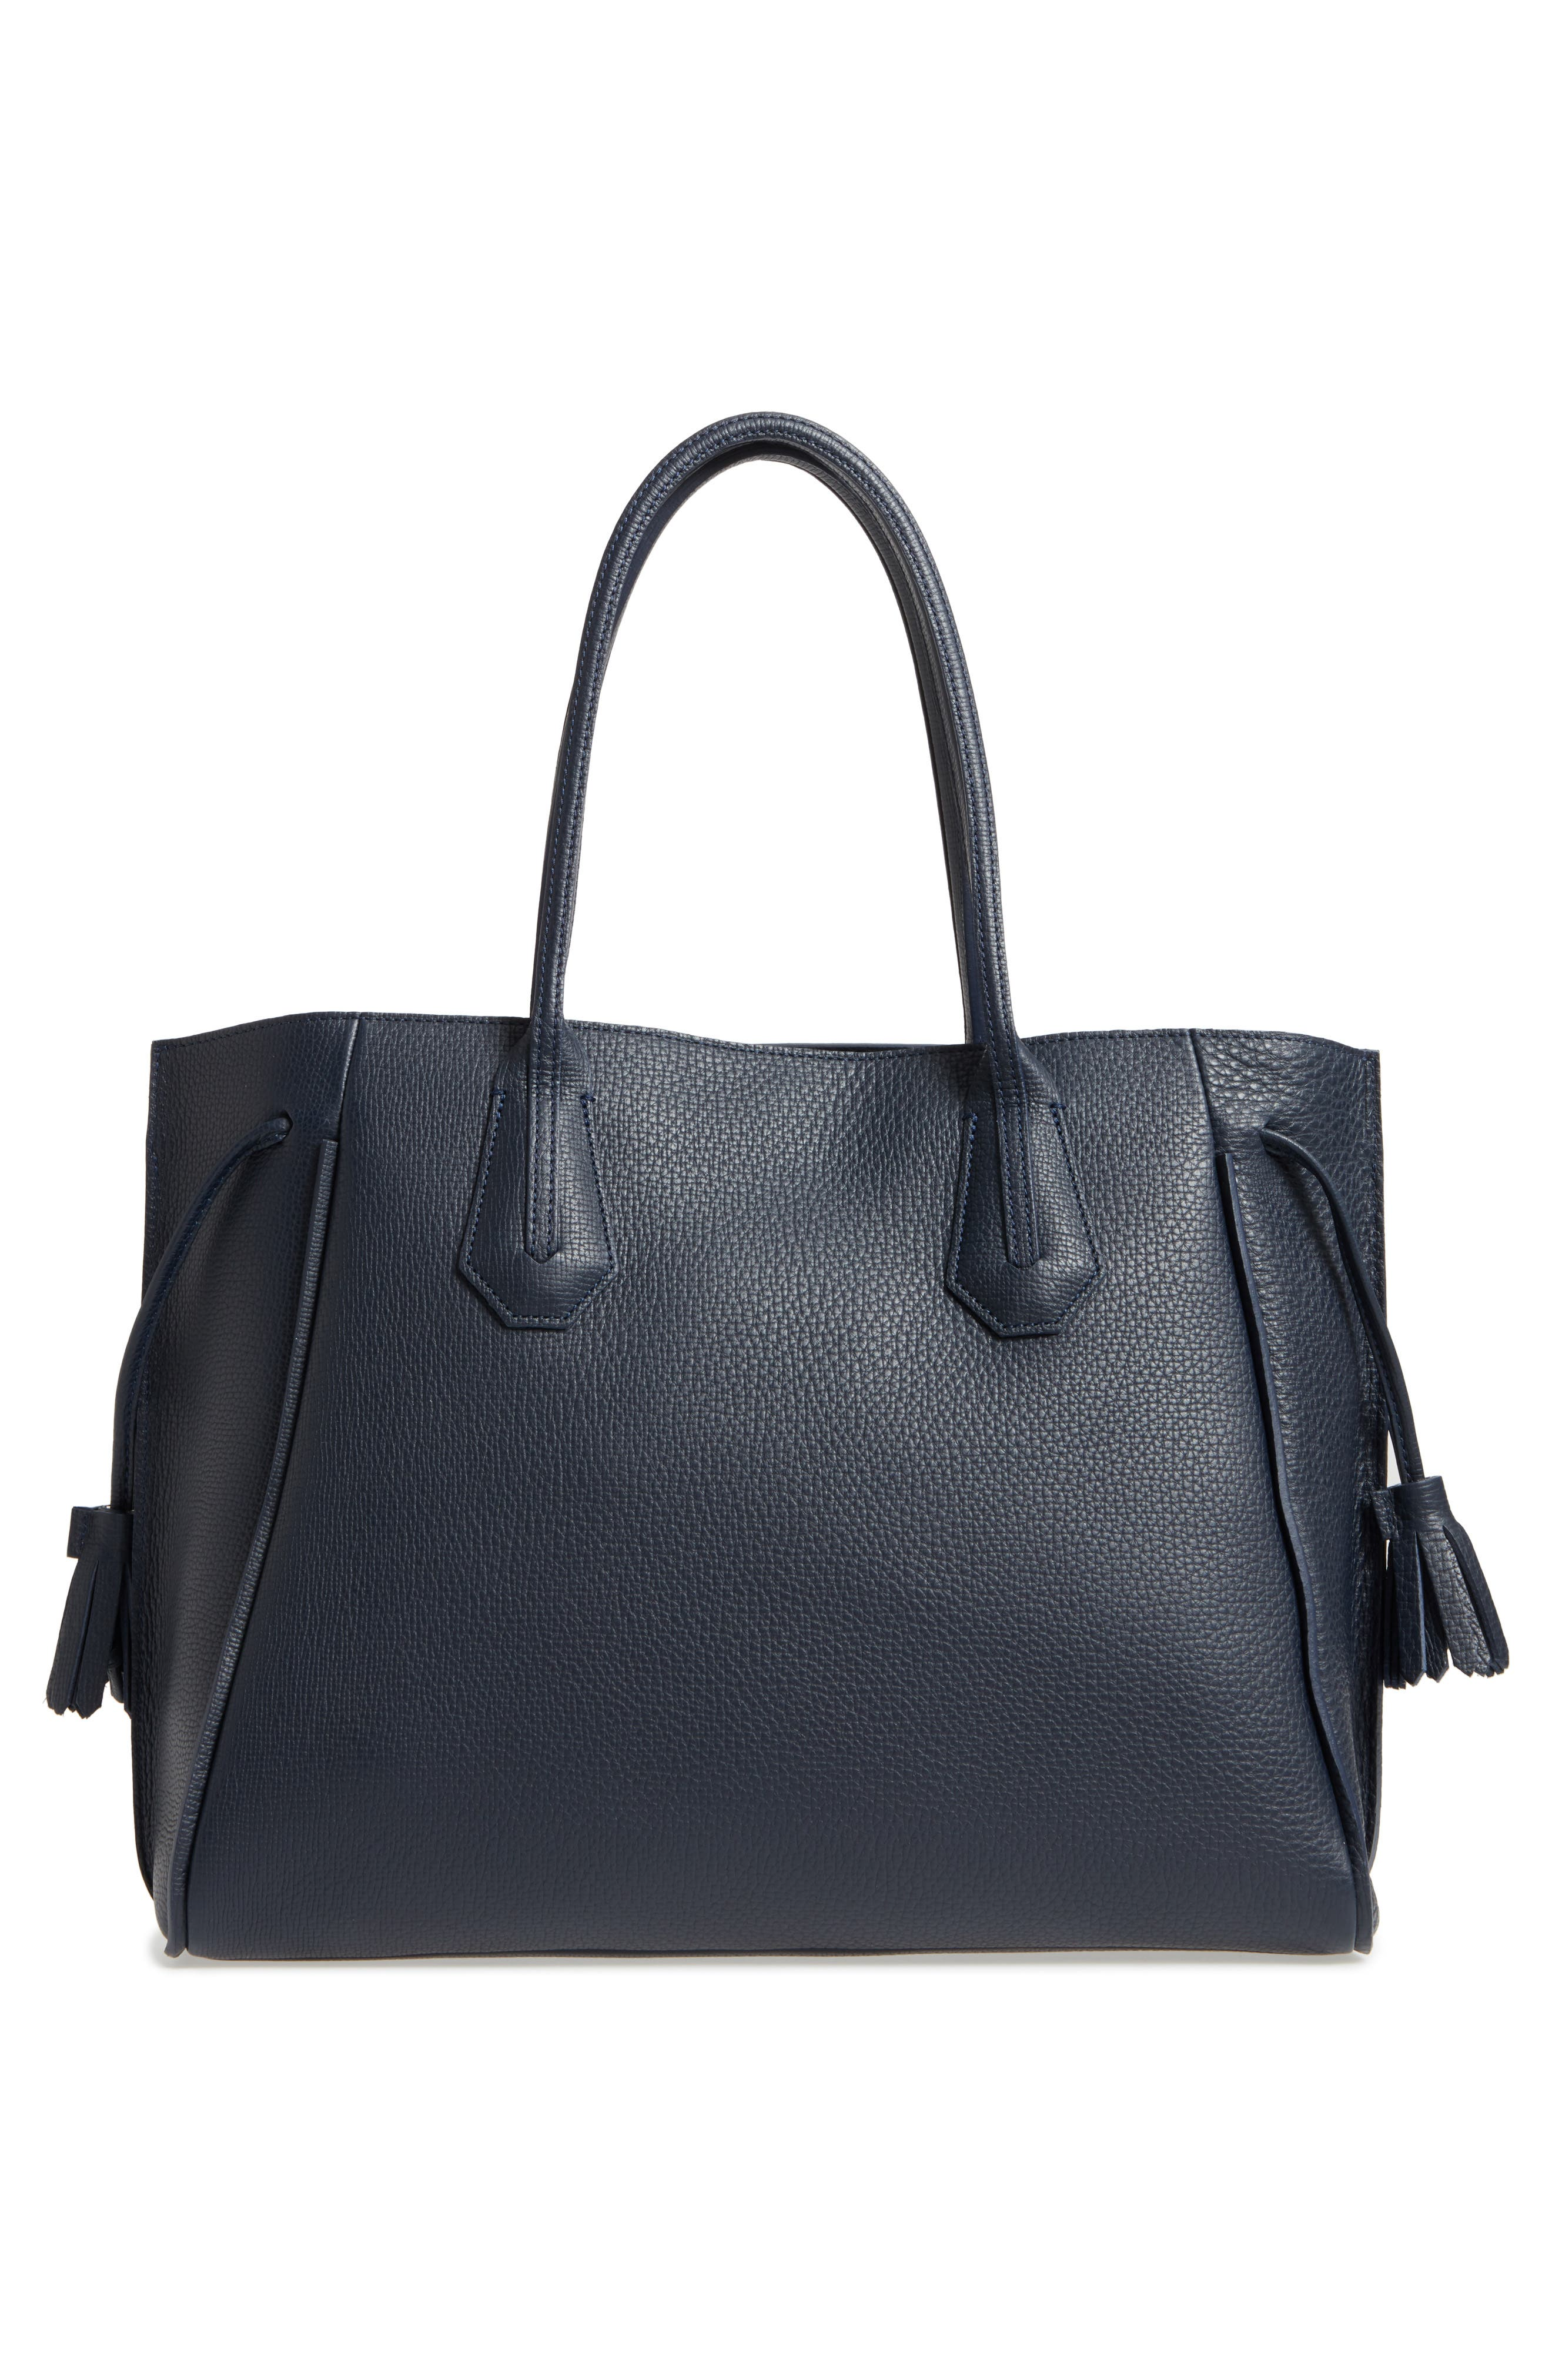 'Penelope' Tassel Drawstring Leather Tote,                             Alternate thumbnail 3, color,                             Midnight